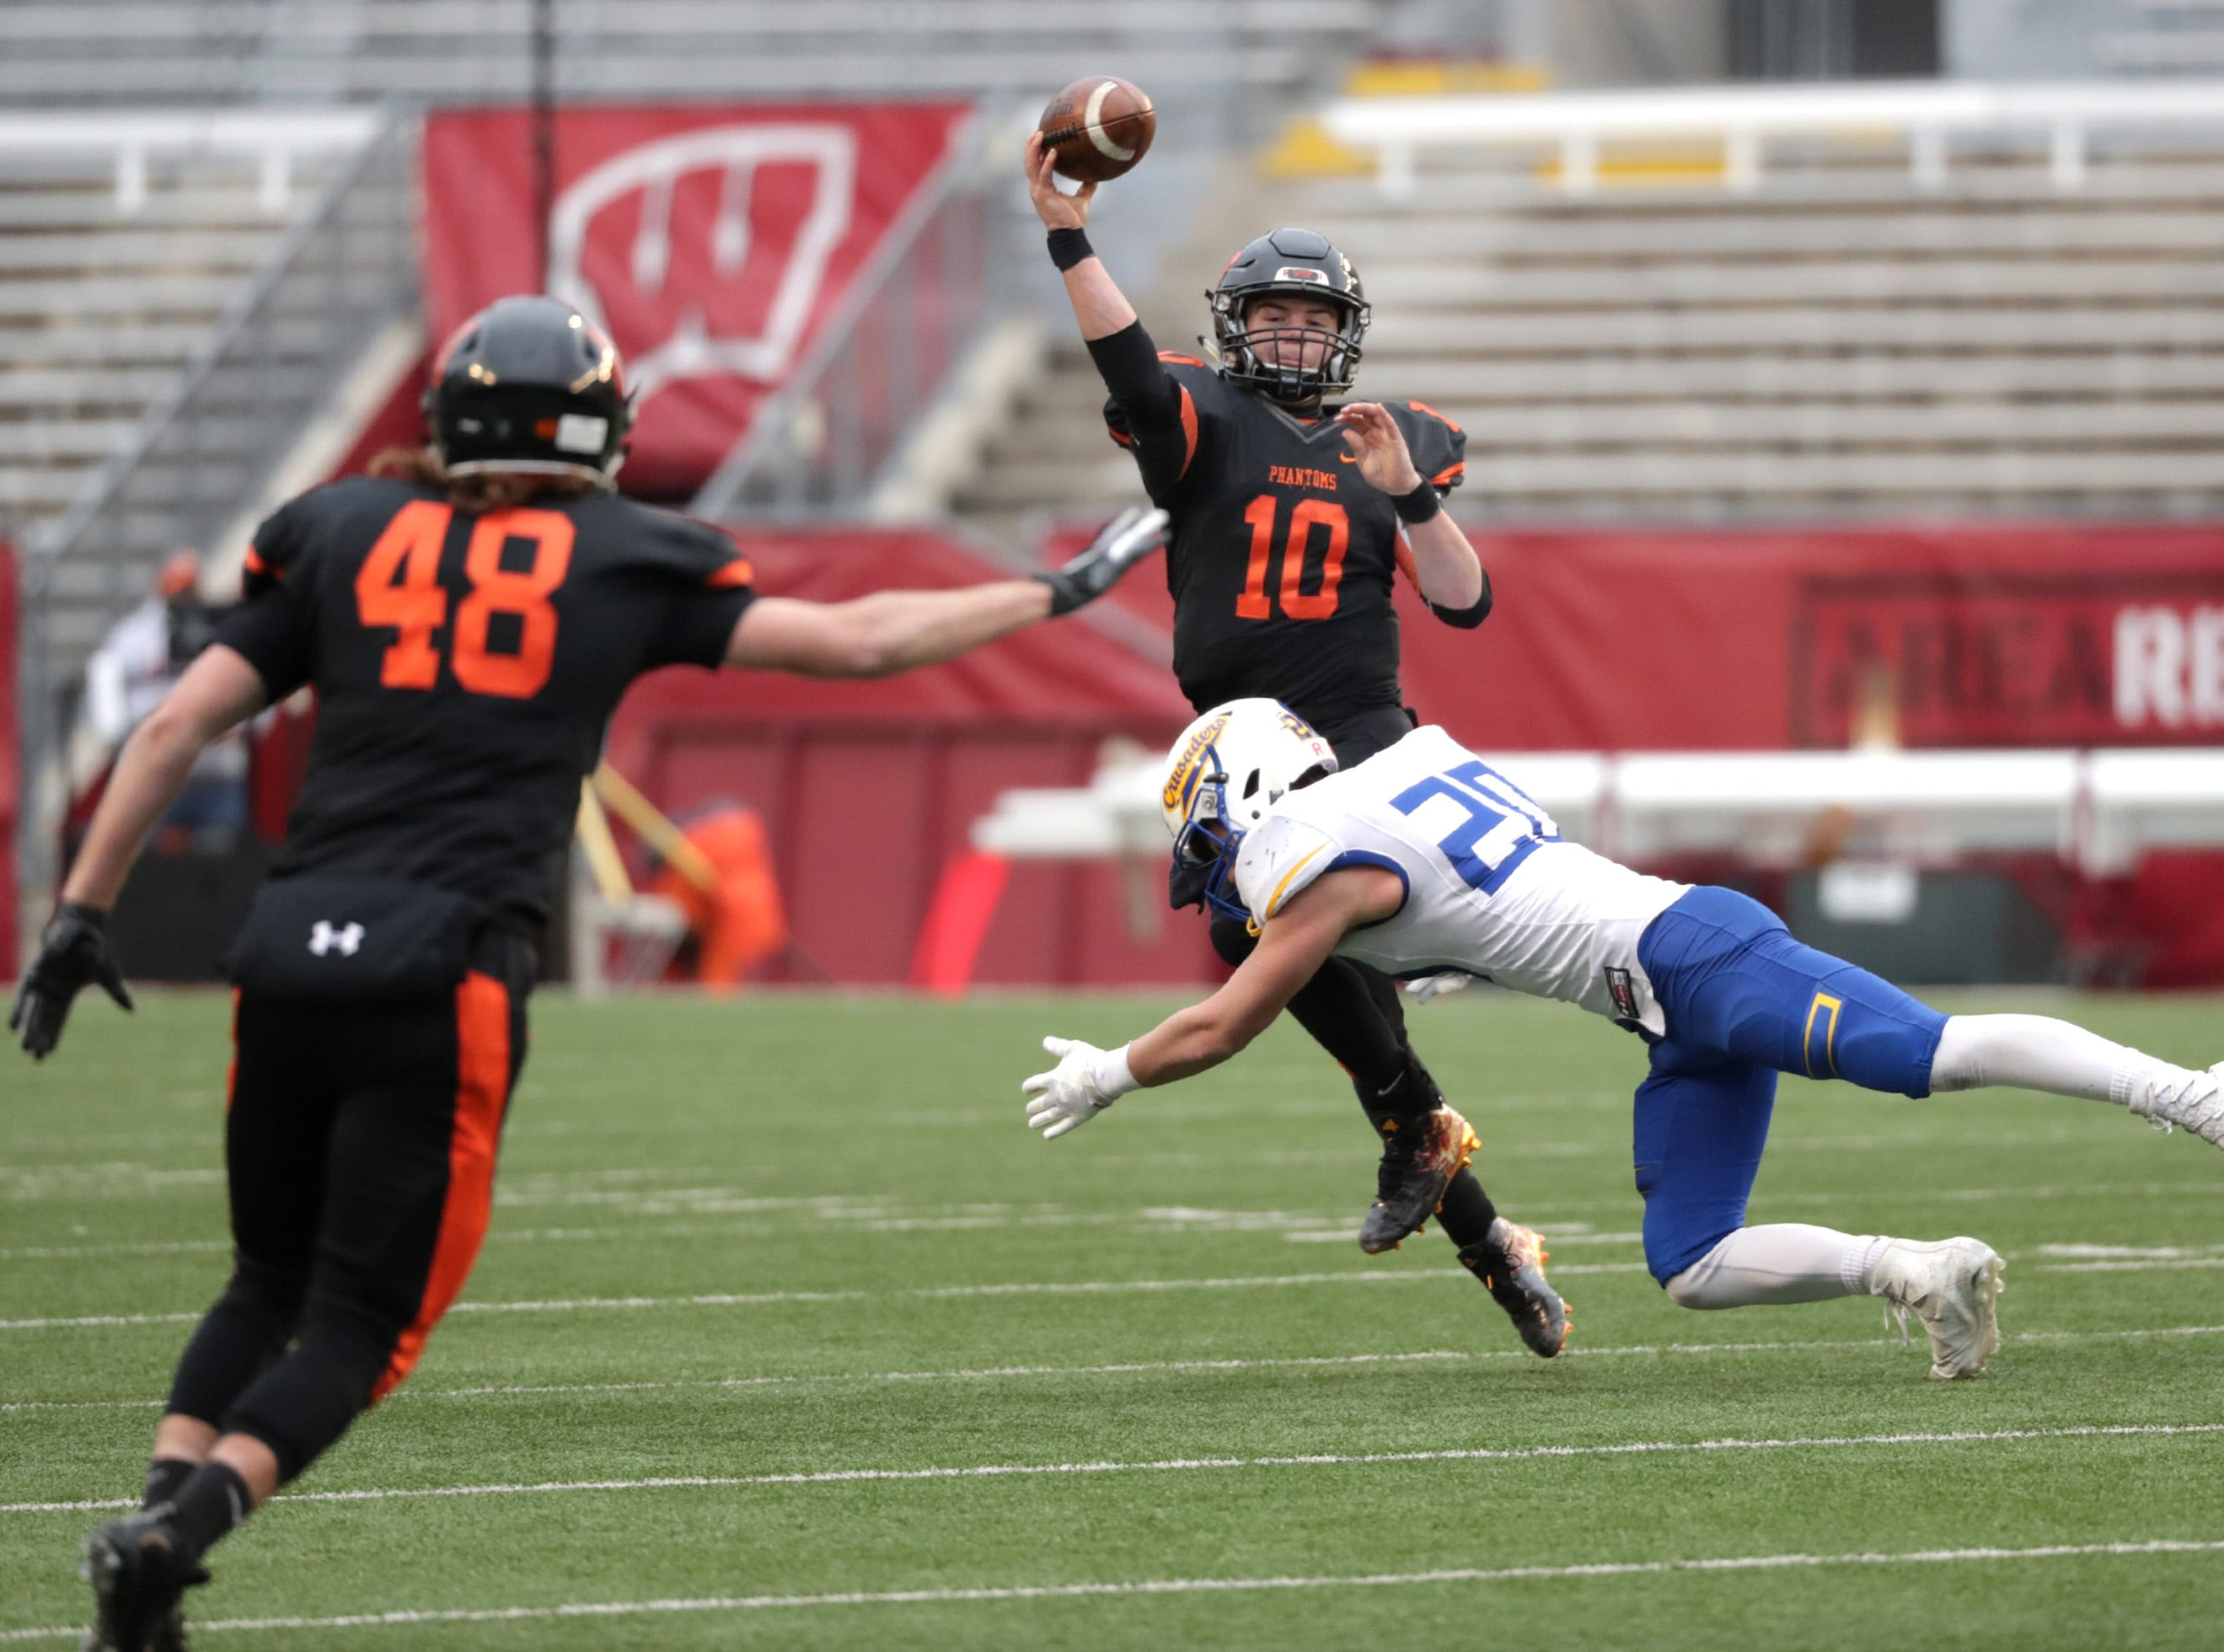 West De Pere High School's #10 Josh blount throws under pressure from Catholic Memorial High School's #20 Joey Goetz during the WIAA Division  3 state championship football game on Friday, November 16, 2018, at Camp Randall in Madison, Wis. Wm. Glasheen/USA TODAY NETWORK-Wisconsin.